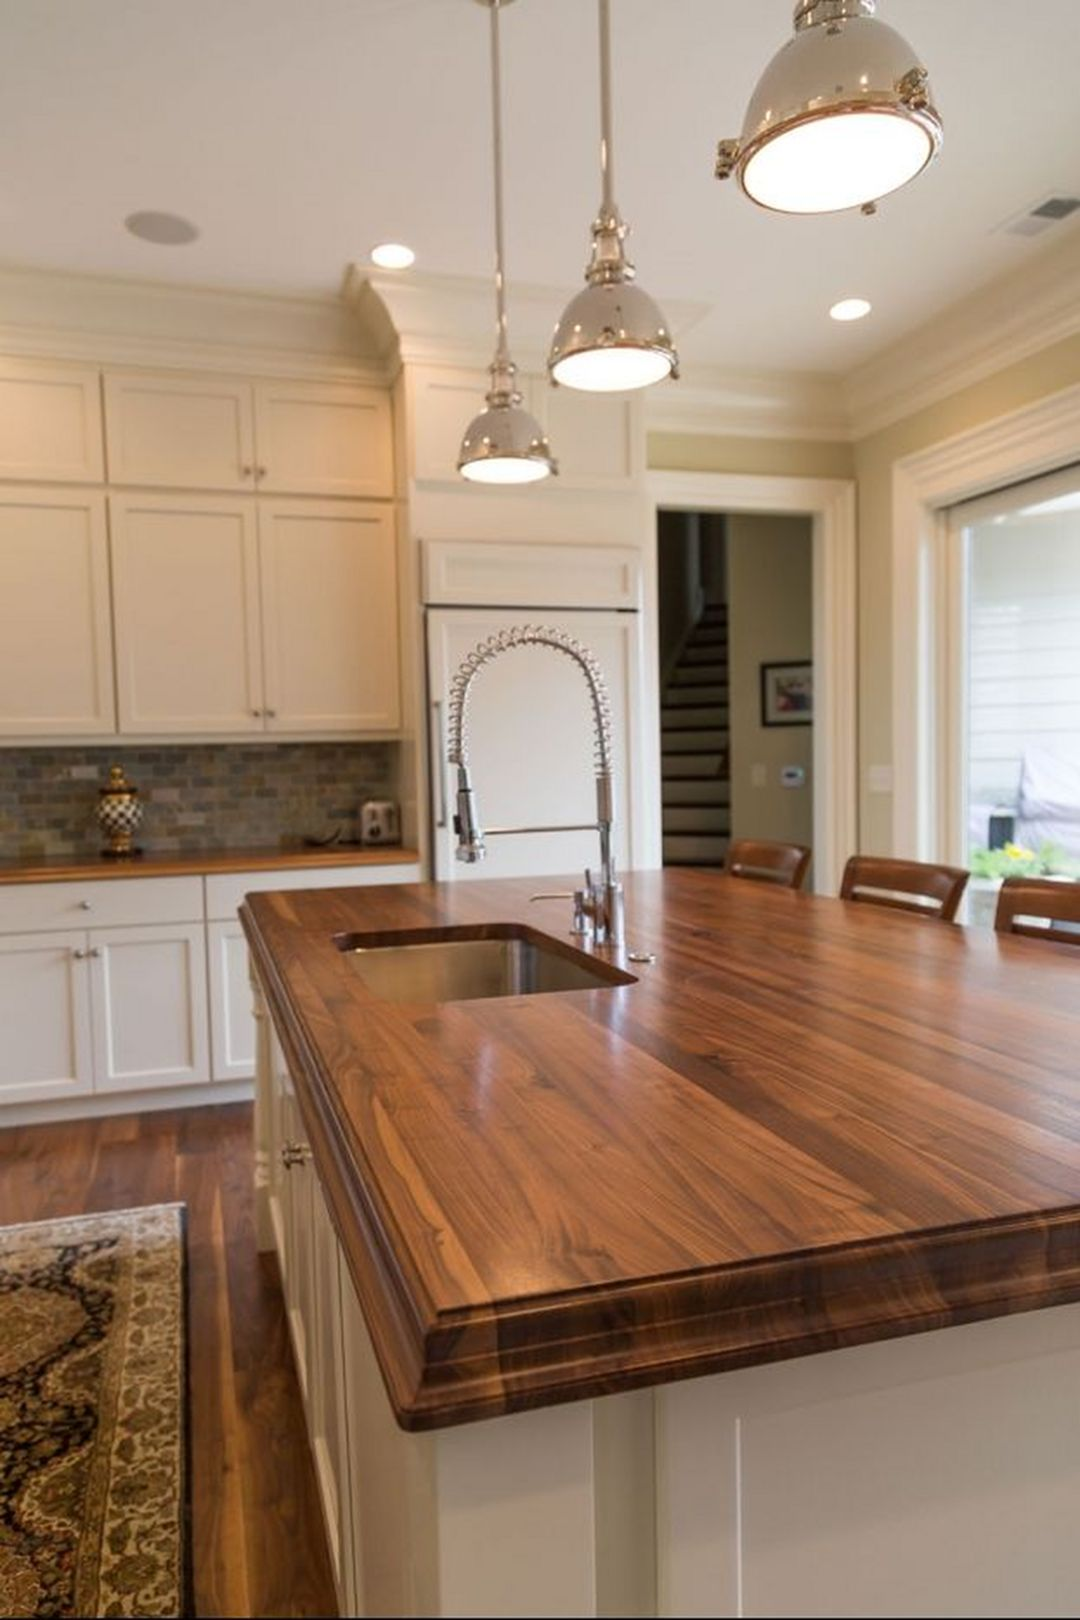 25 Stunning Wooden Kitchen Ideas For Best Choice To Renovate Your